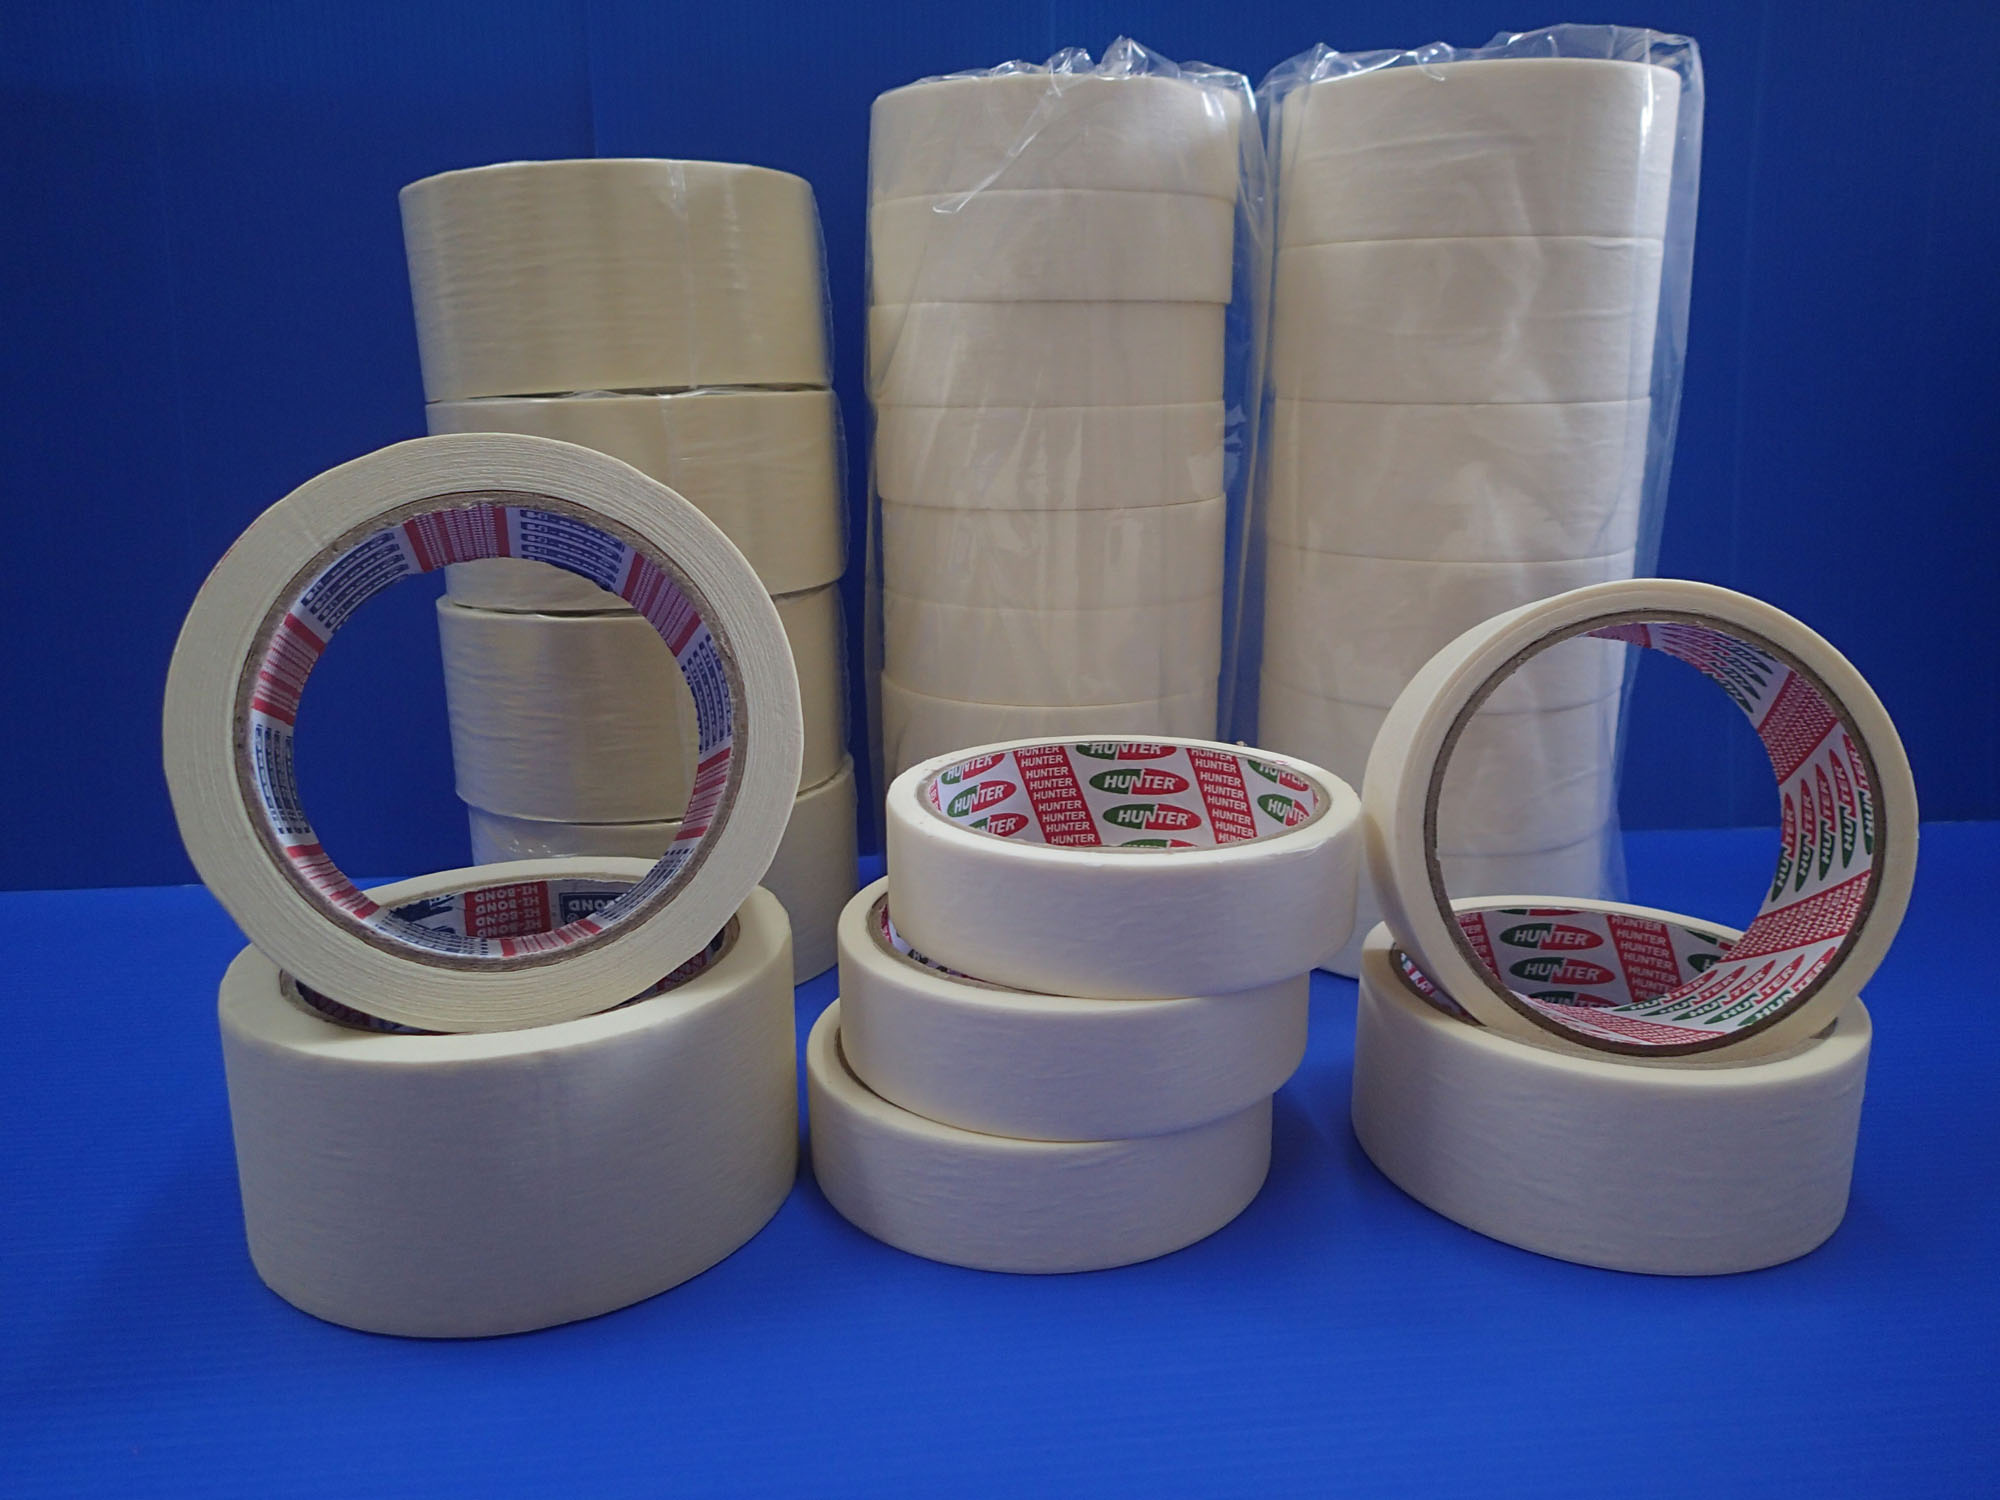 5360803792ee19db6f0003aa_E2%20Masking%20Tapes.jpg